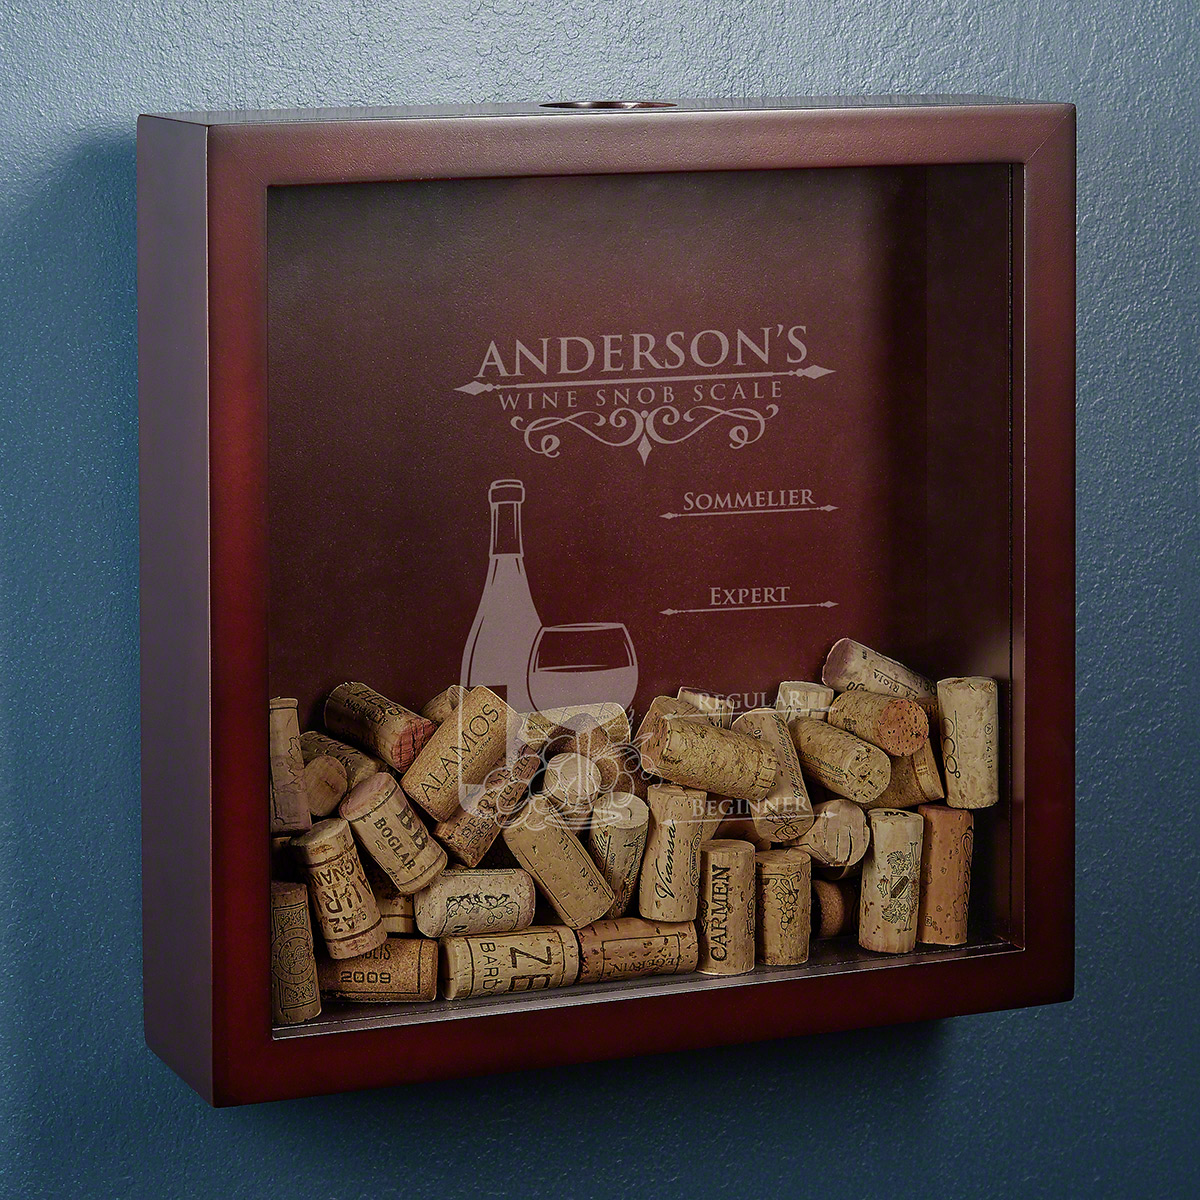 Wine Snob Scale Personalized Wine Cork Keeper